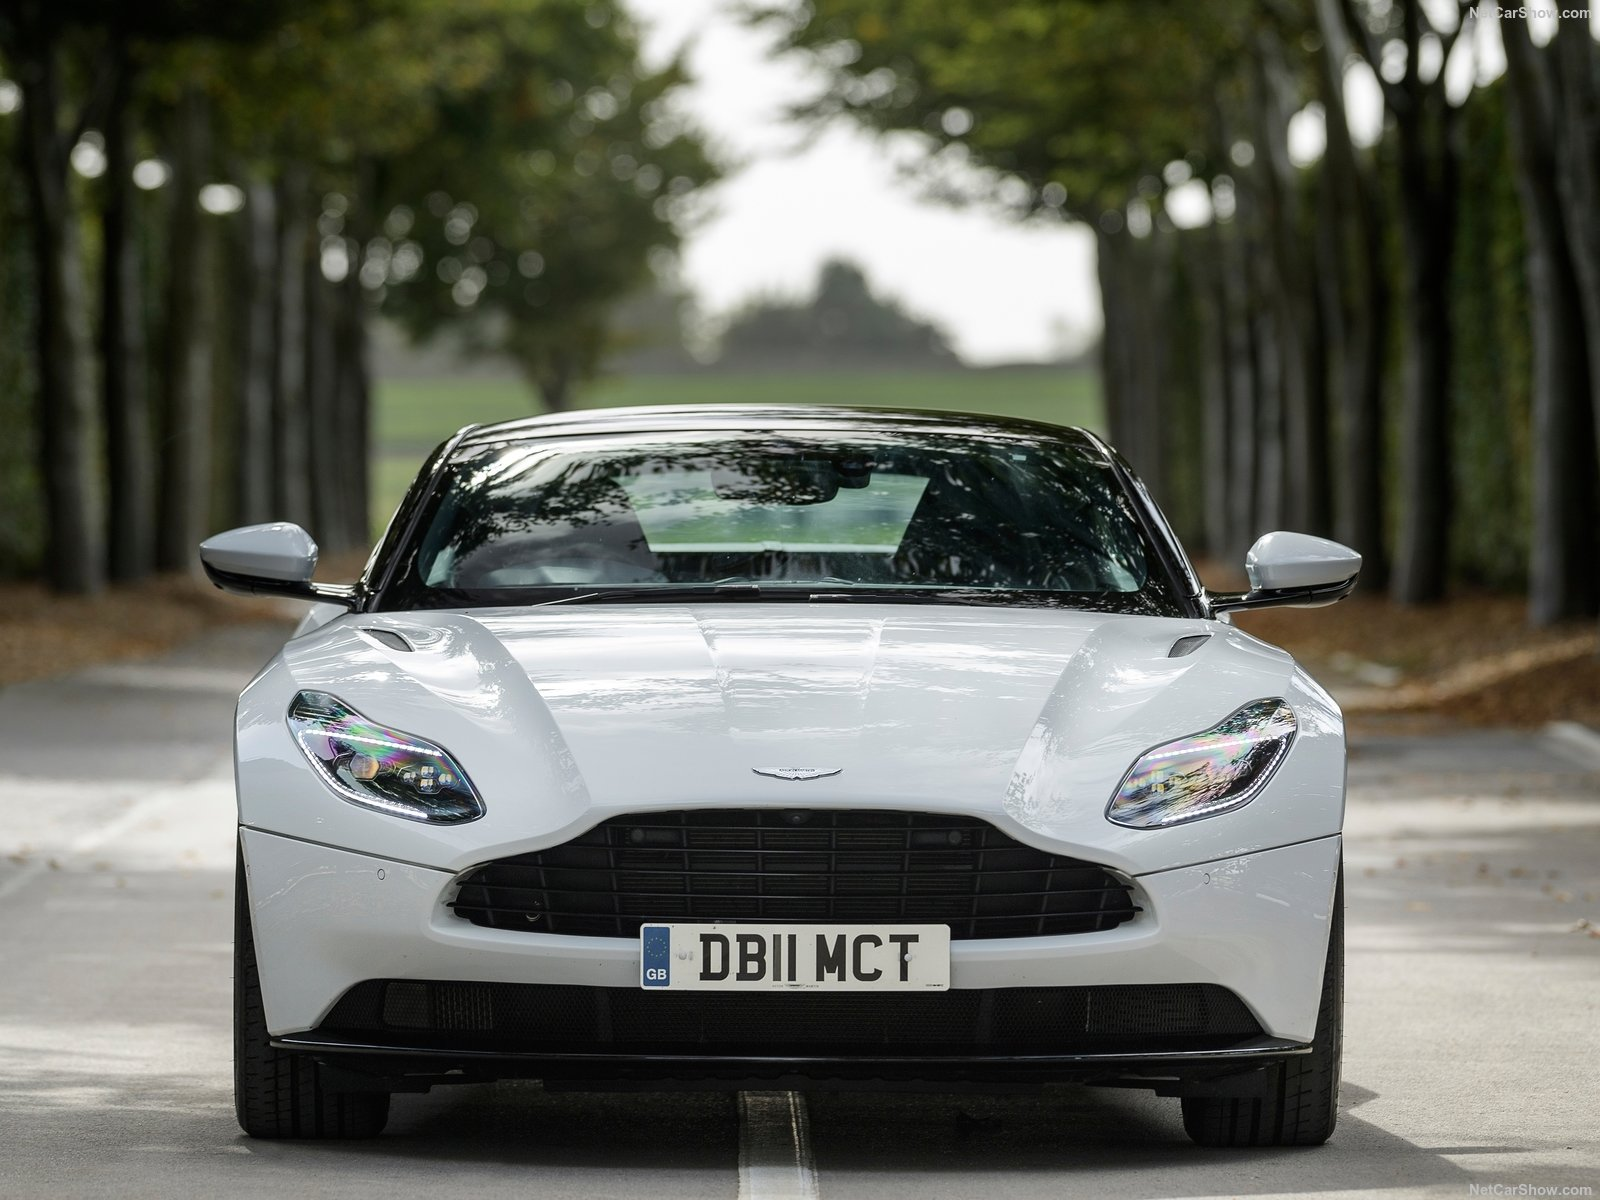 Aston Martin DB11 photo 190131